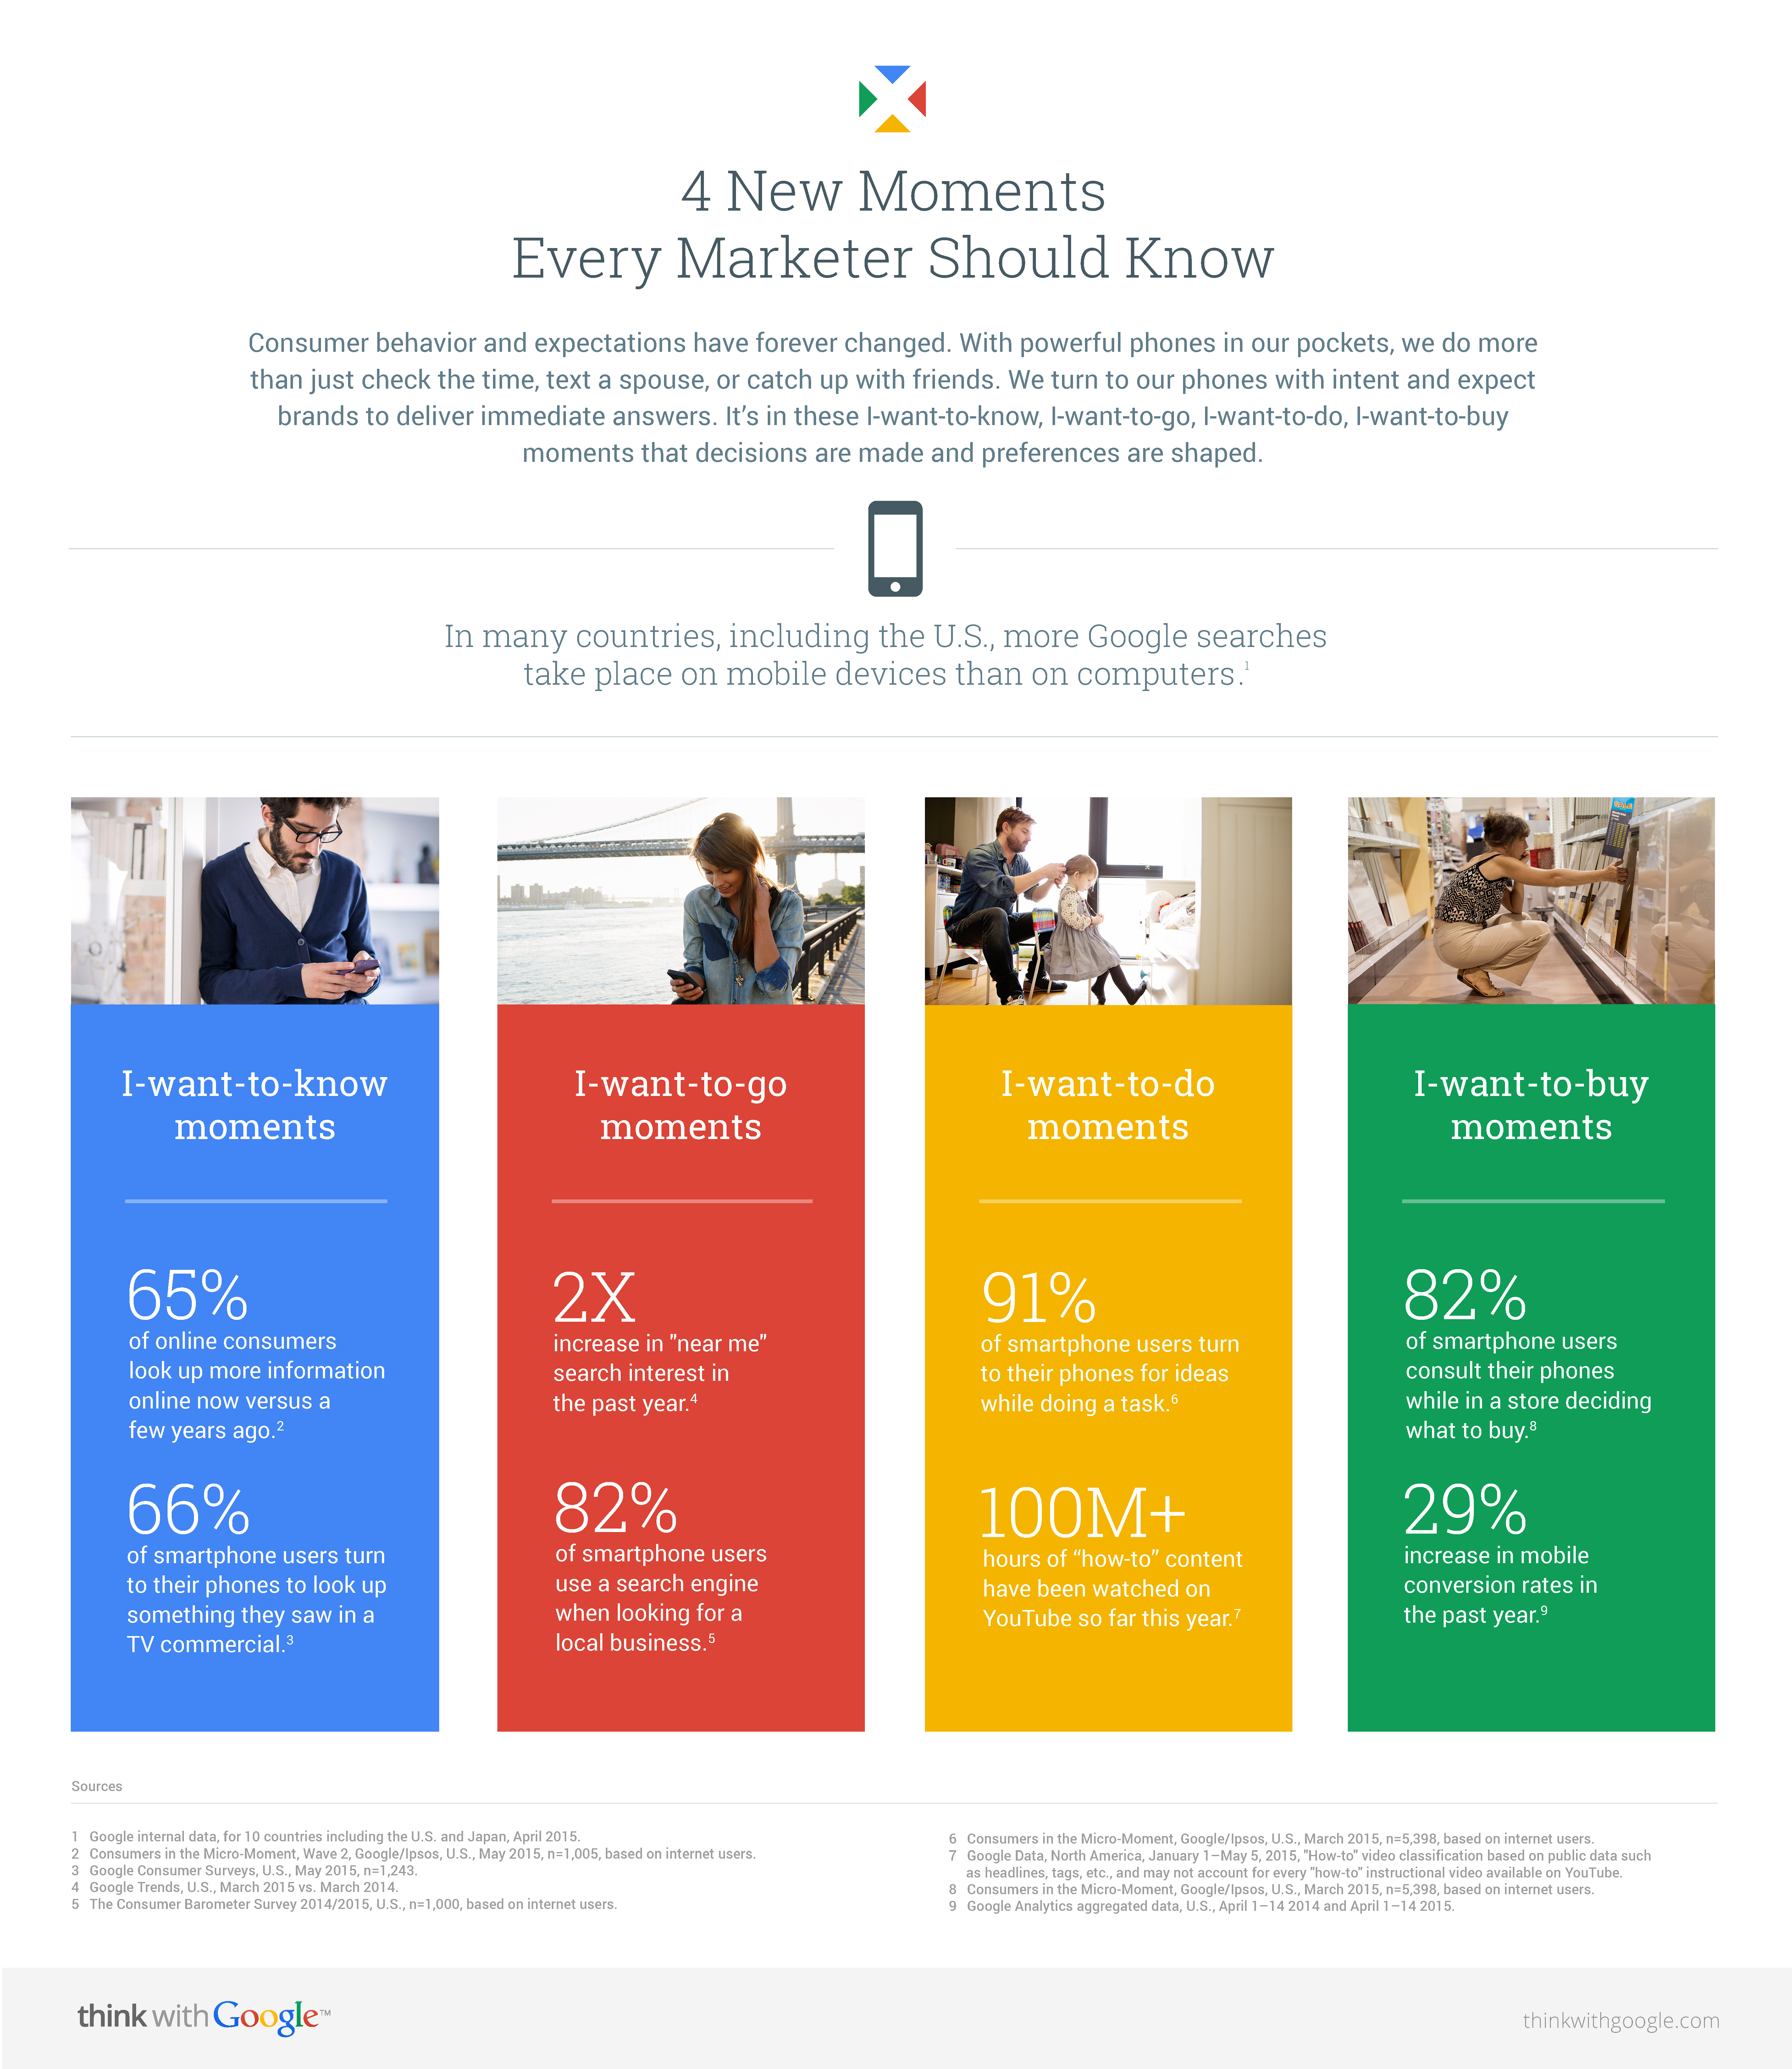 4 New Moments Every Marketer Should Know - Micro-Moment Marketing